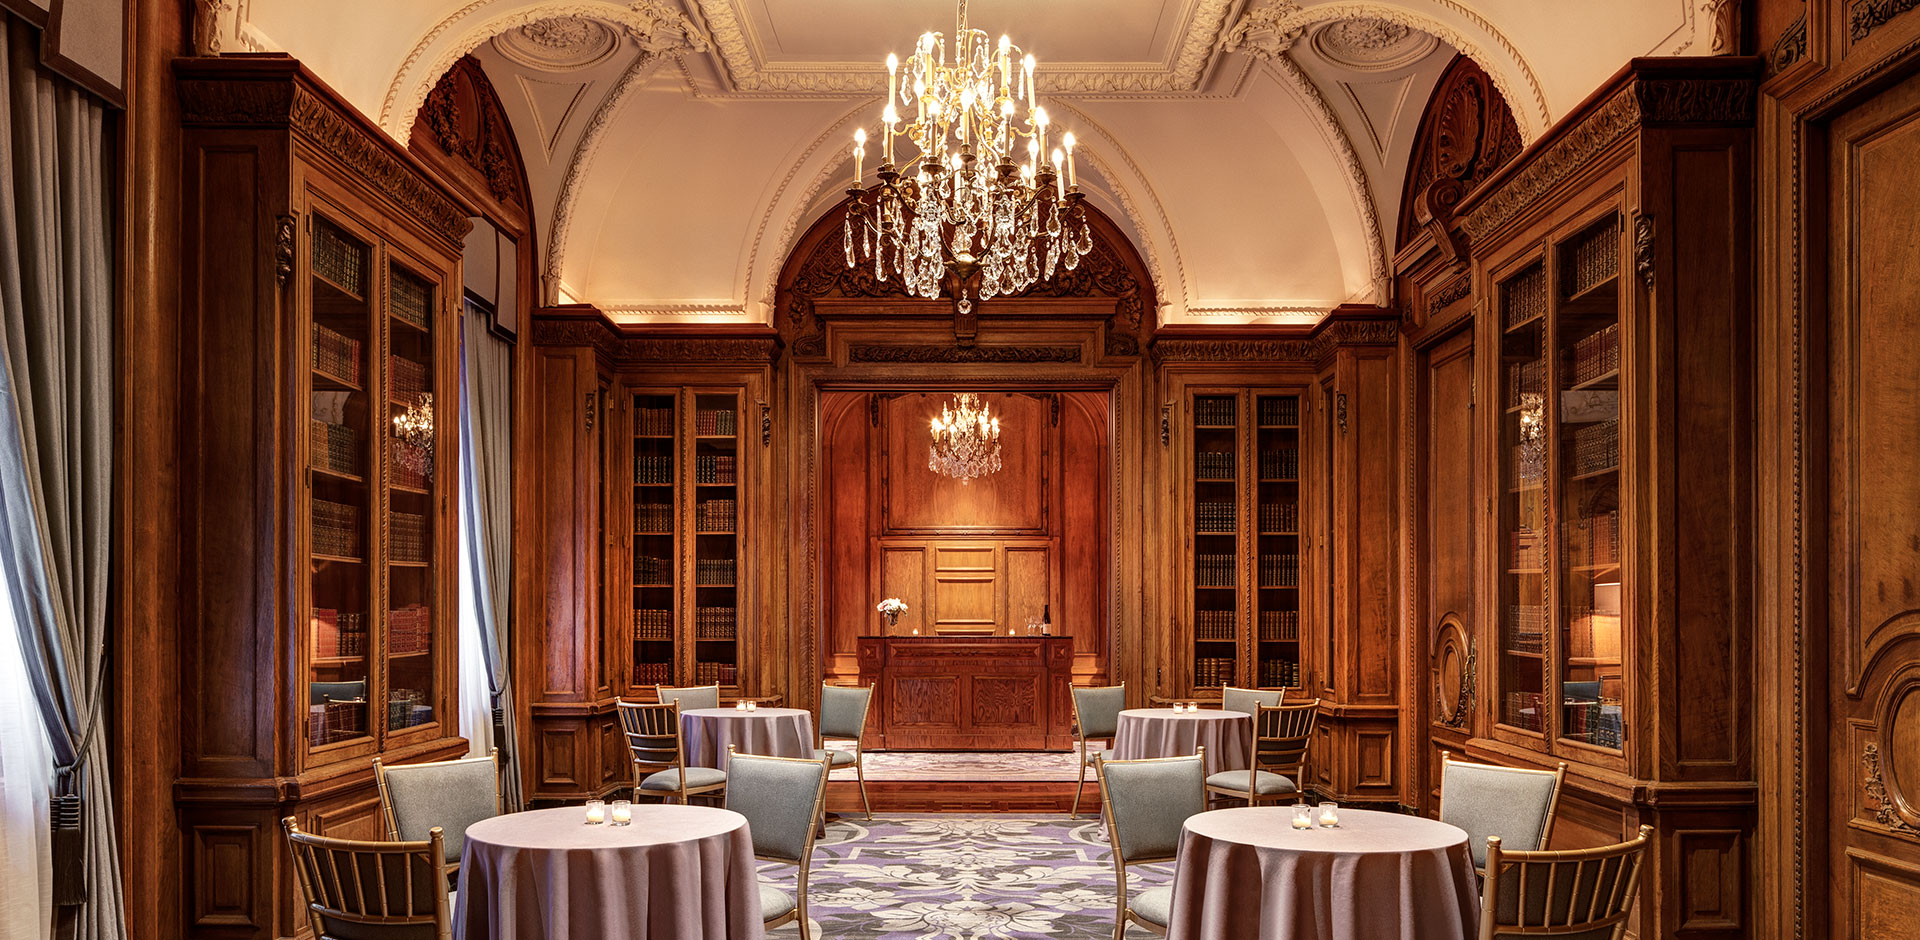 St Regis, New York - Library